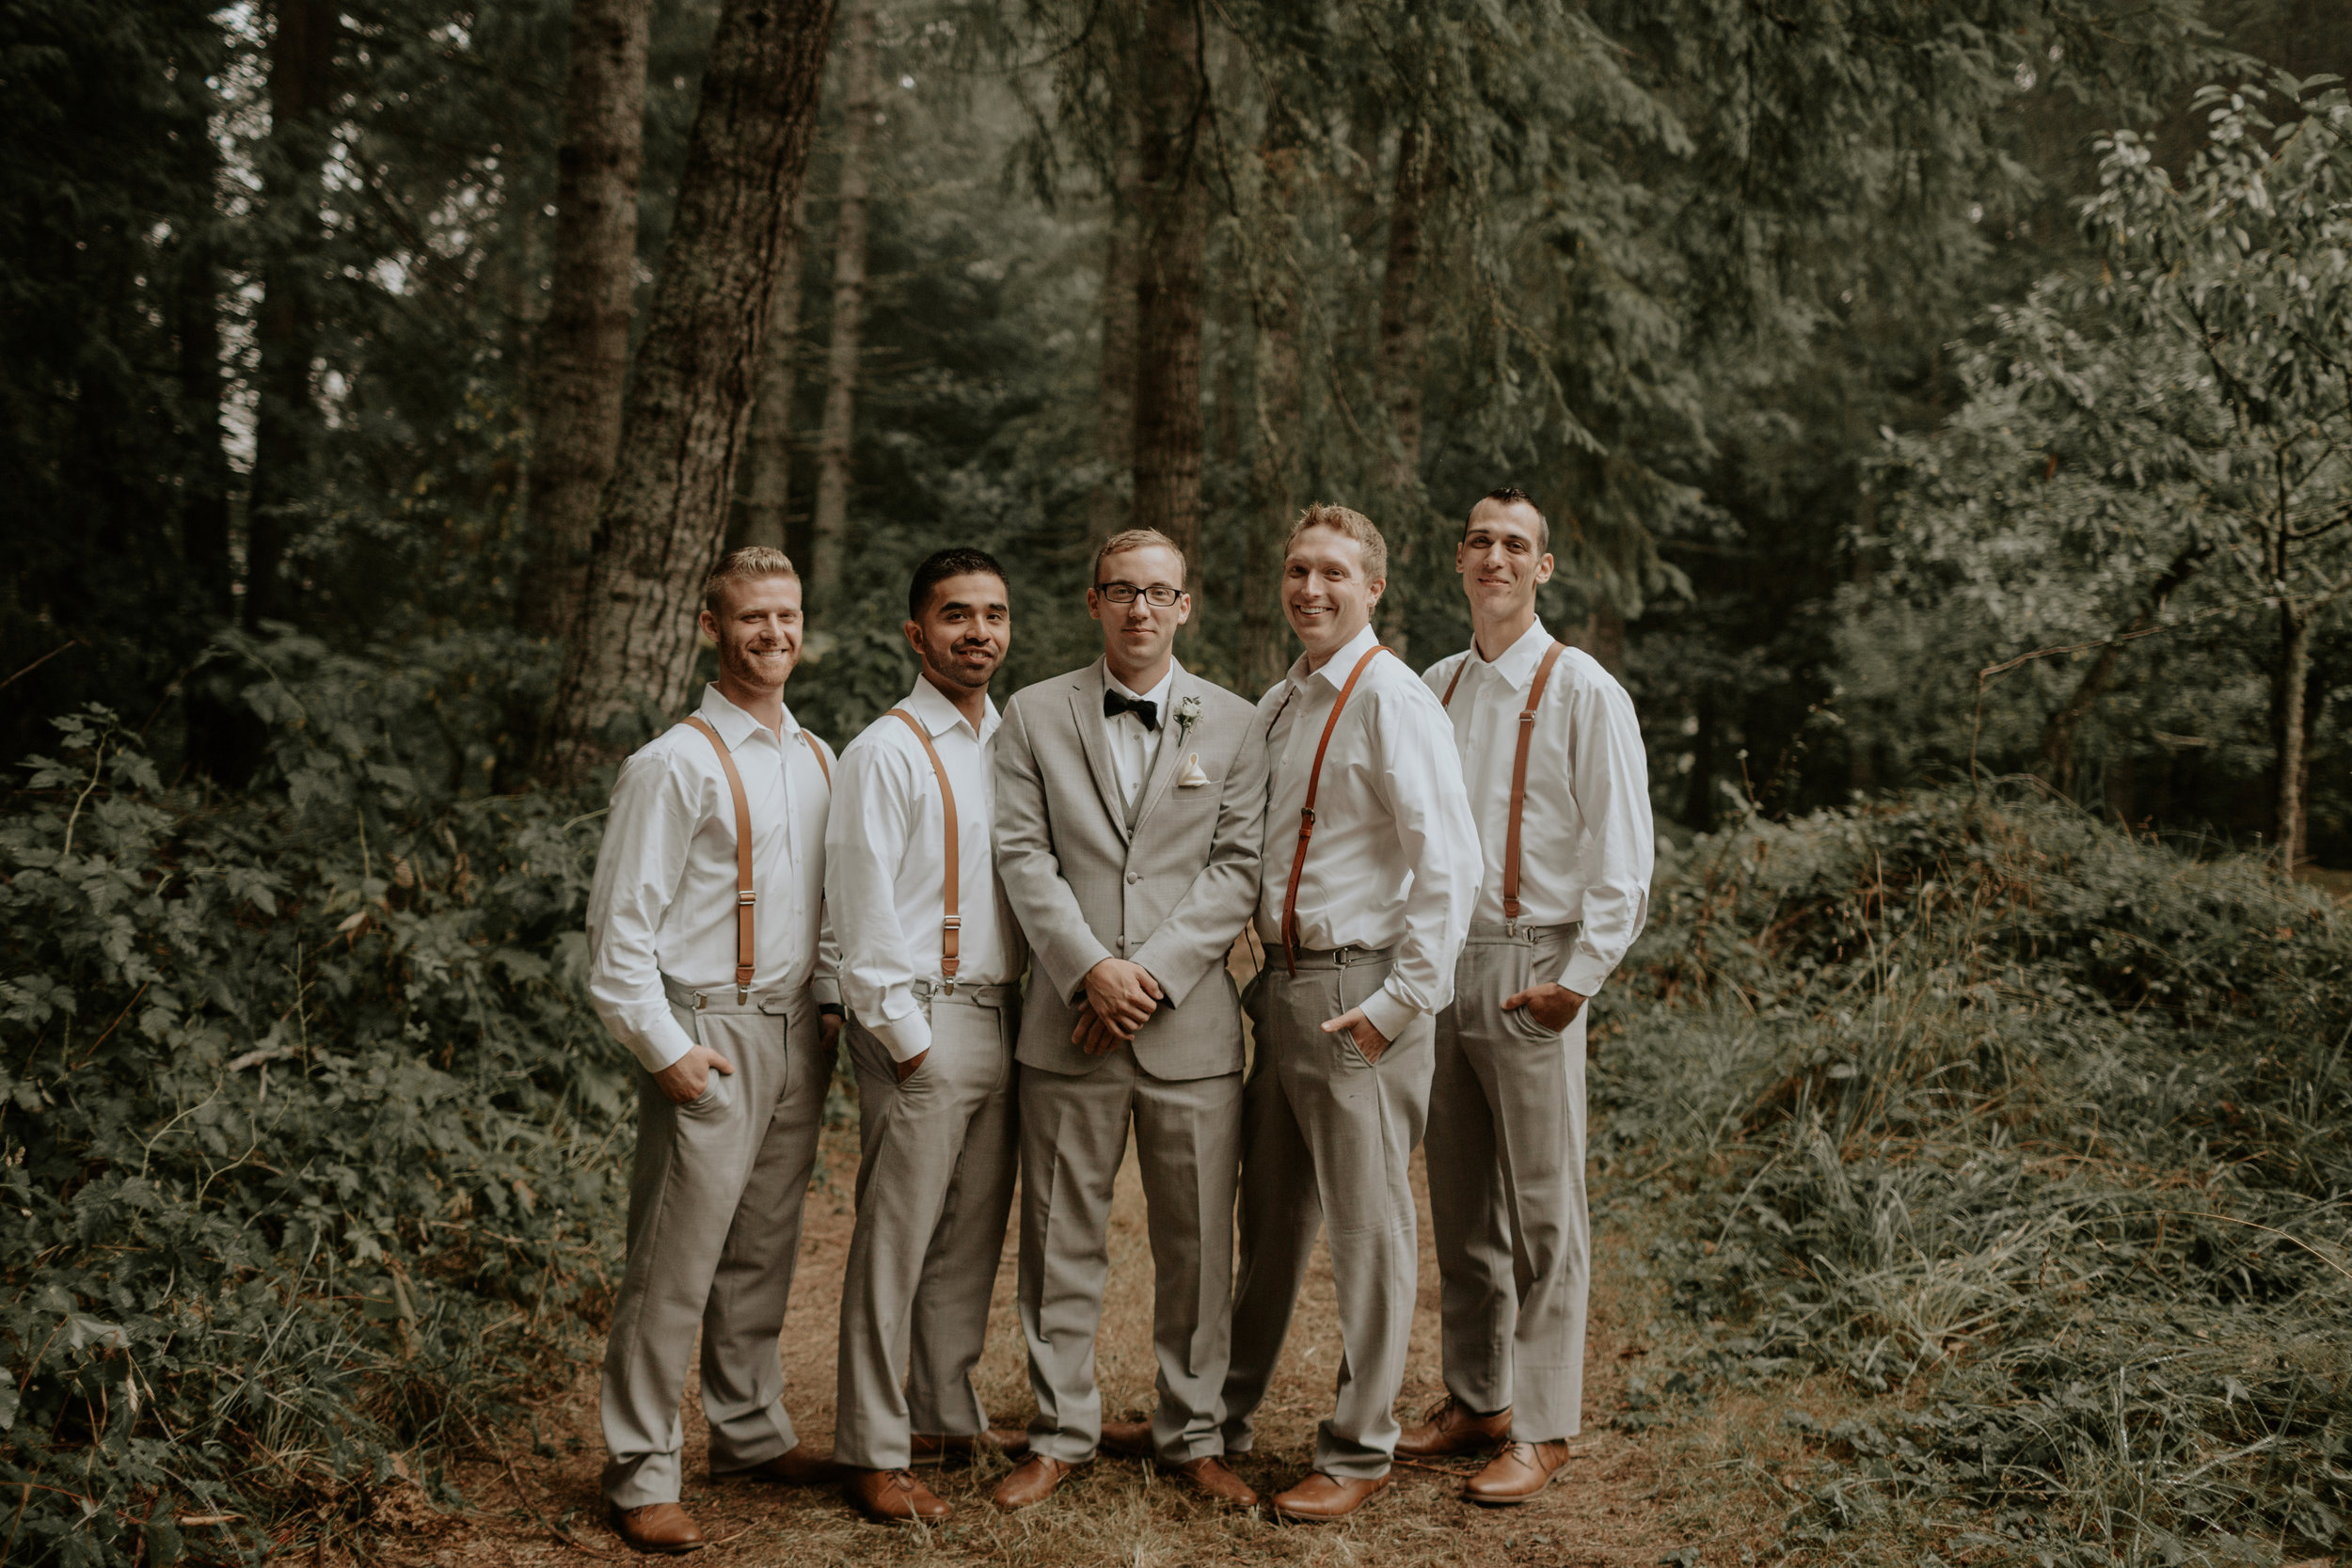 Port-Angeles-elopement-wedding-pnw-olympic-peninsula-photographer-portrait-kayladawnphoto-kayla-dawn-photography-olympic-national-park-23.jpg